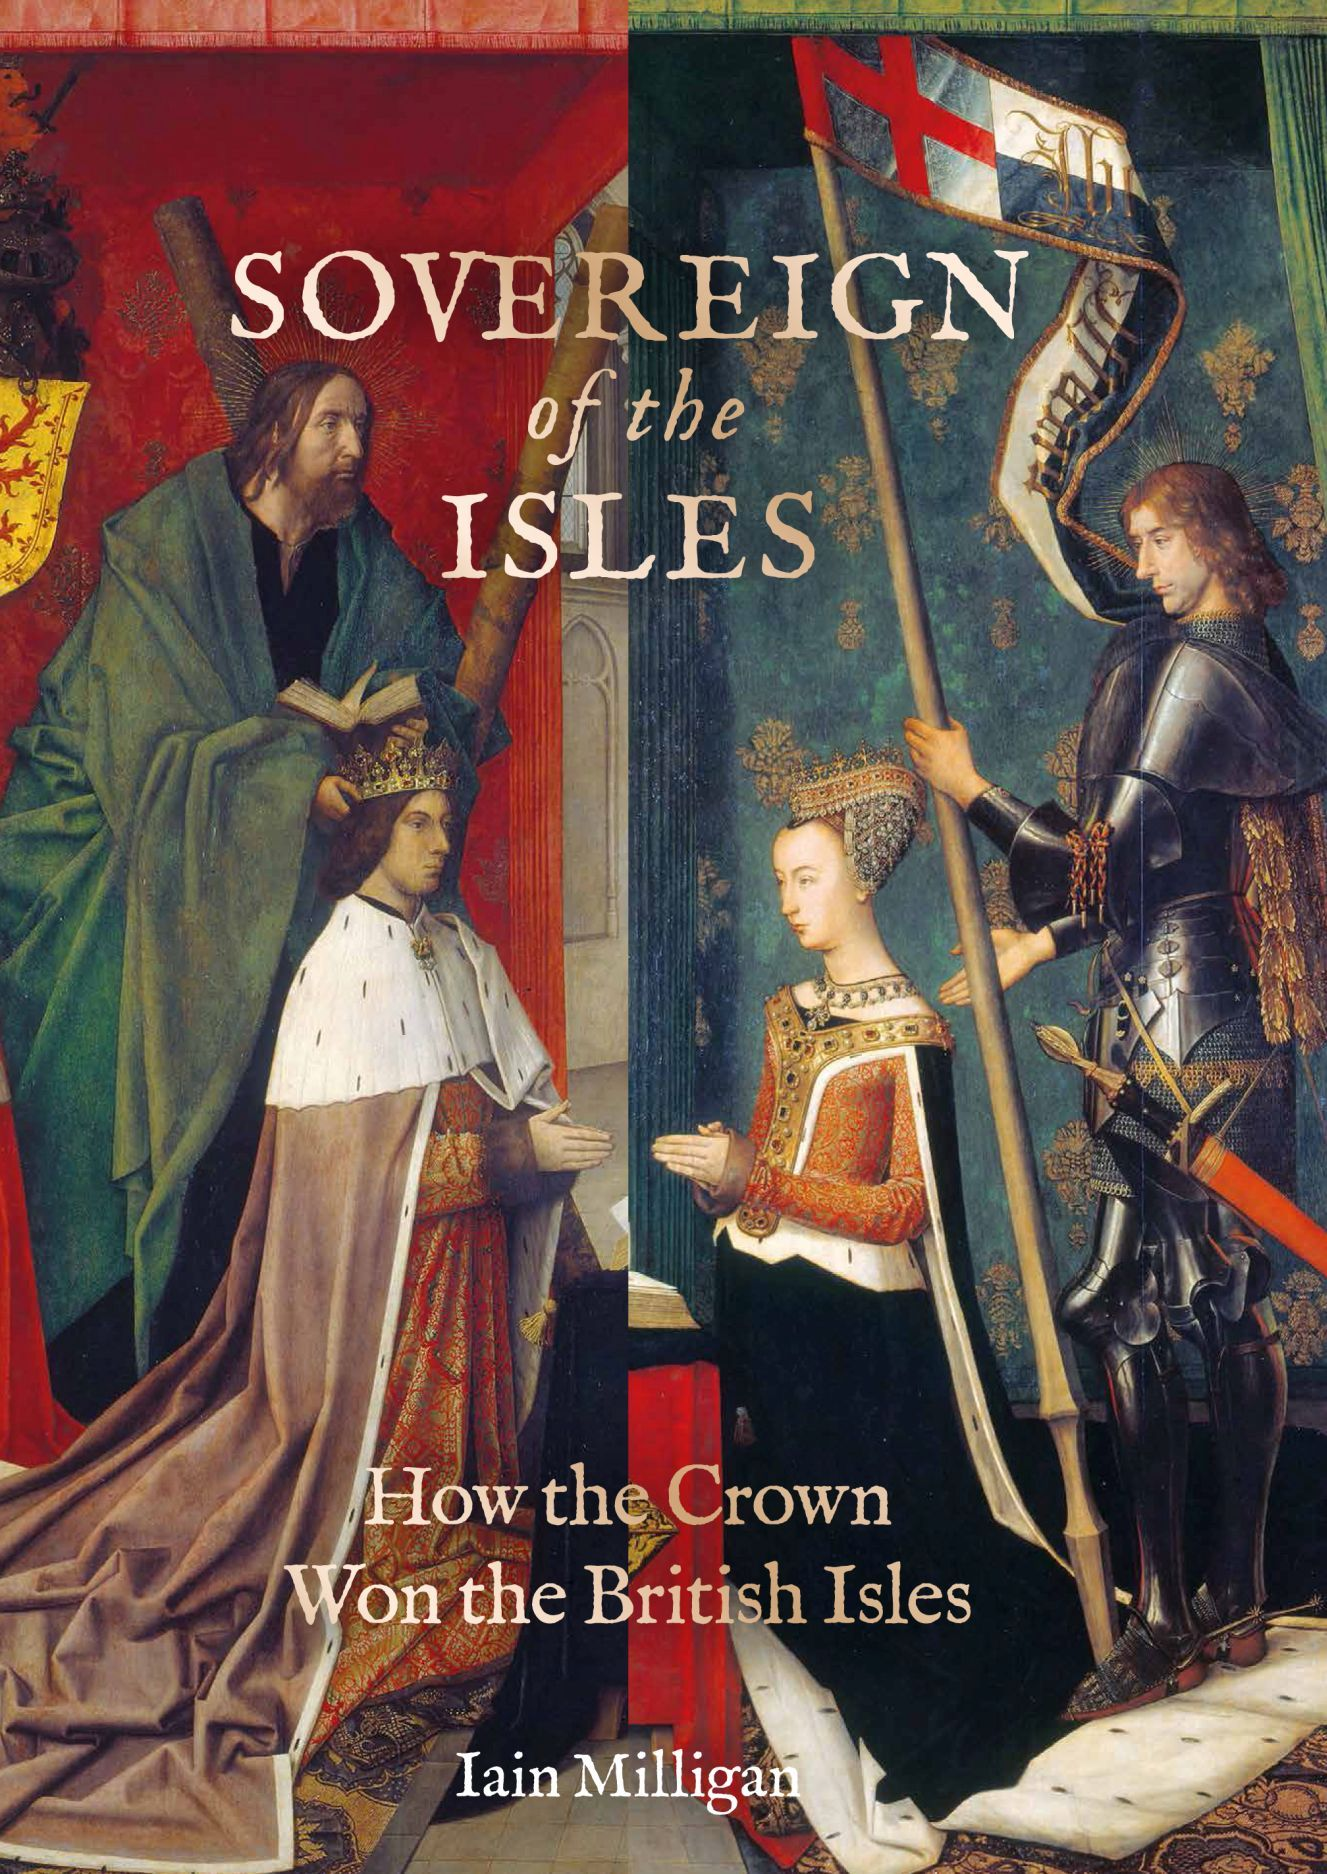 Sovereign of the Isles: How the Crown Won the British Isles